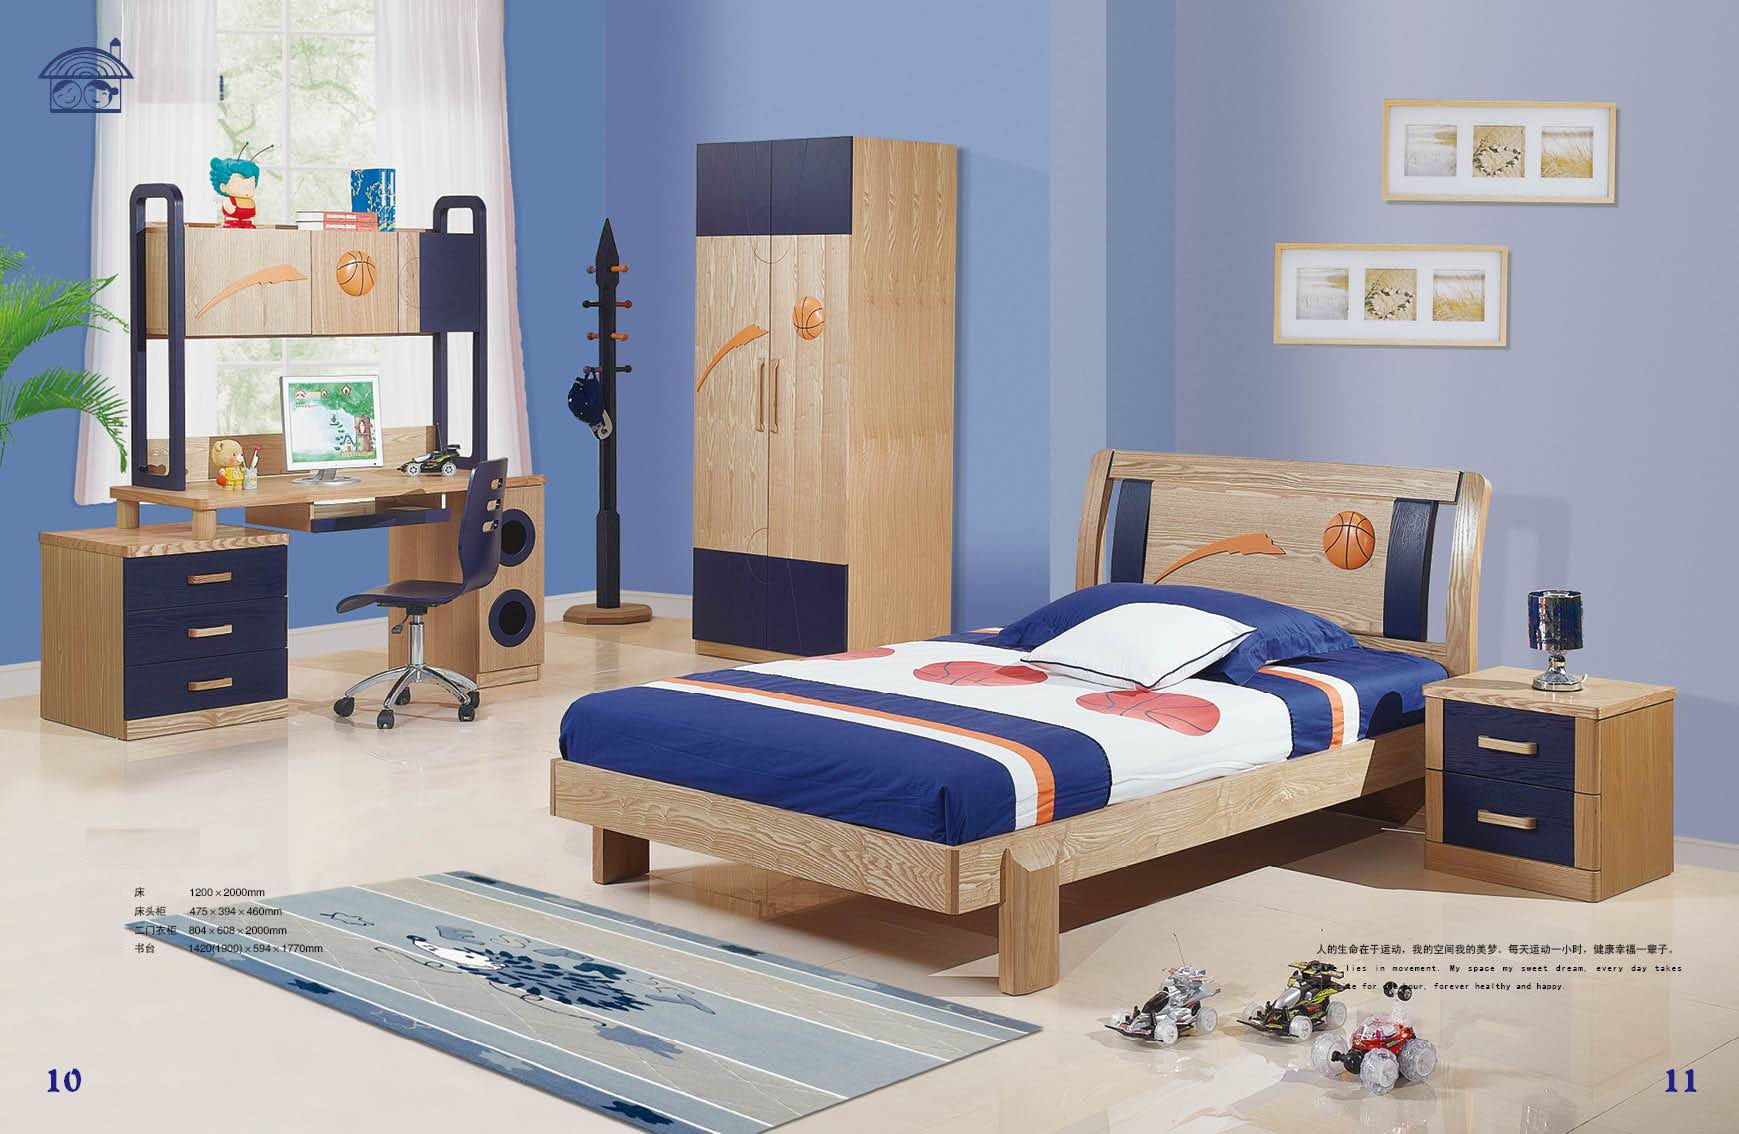 Luxury ... Kids Bedroom Furniture Sets Bedroom Kids Bedroom Furniture Sets For Boys kids bedroom furniture sets for boys